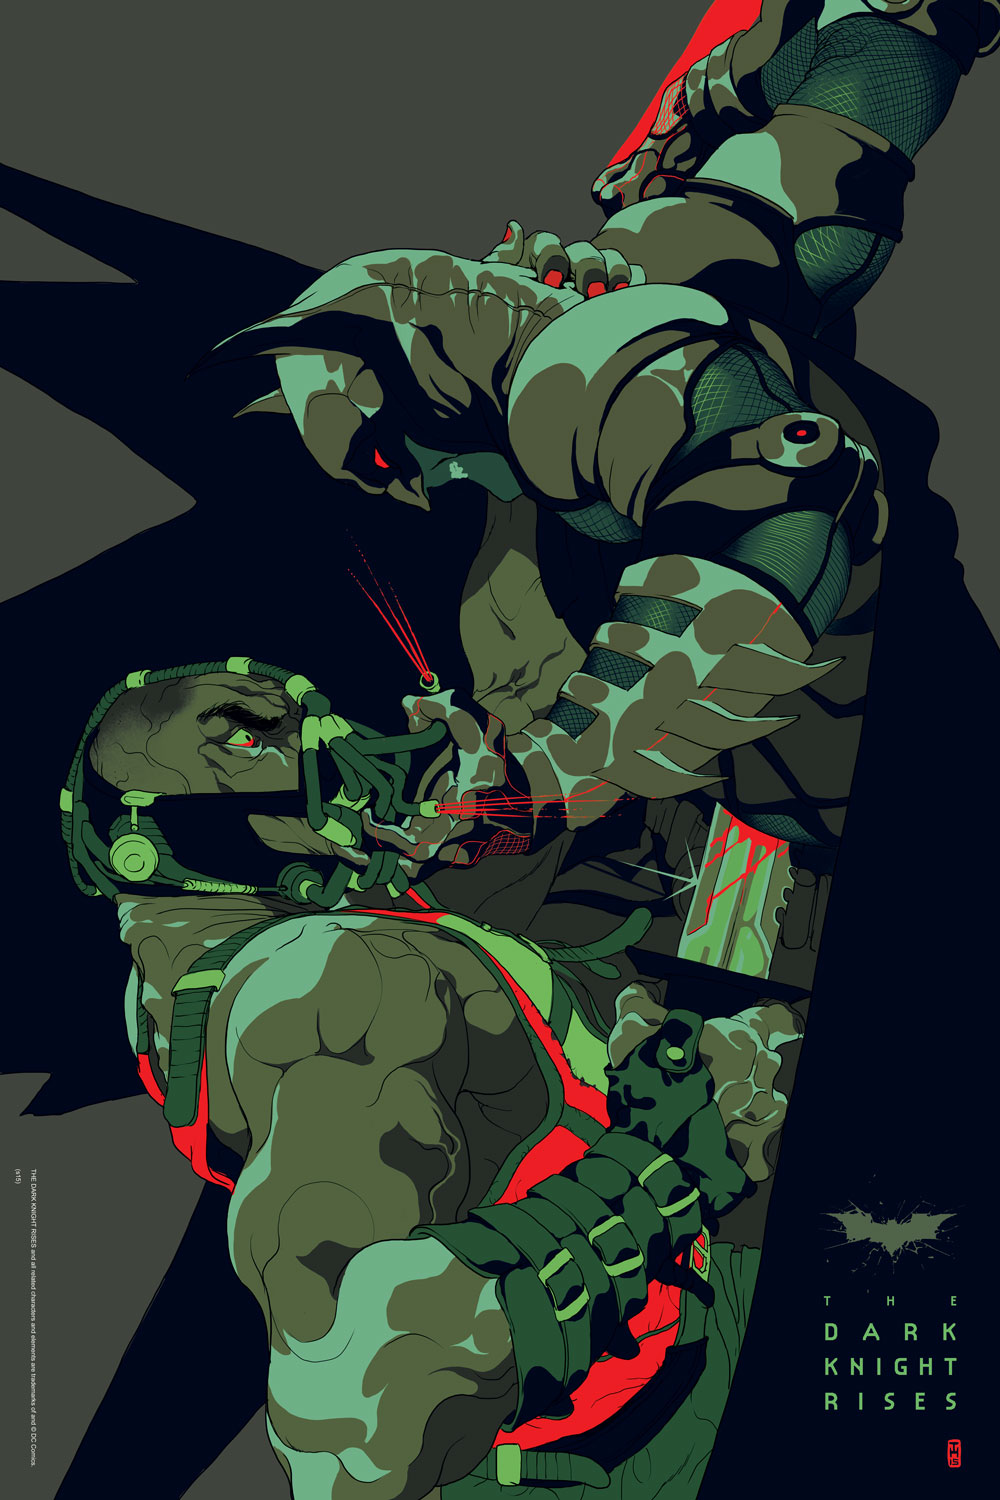 """The Dark Knight Rises"" by Tomer Hanuka.  24"" x 36"" 9-color Screenprint.  Ed of 250 N.  60€ ($68)"